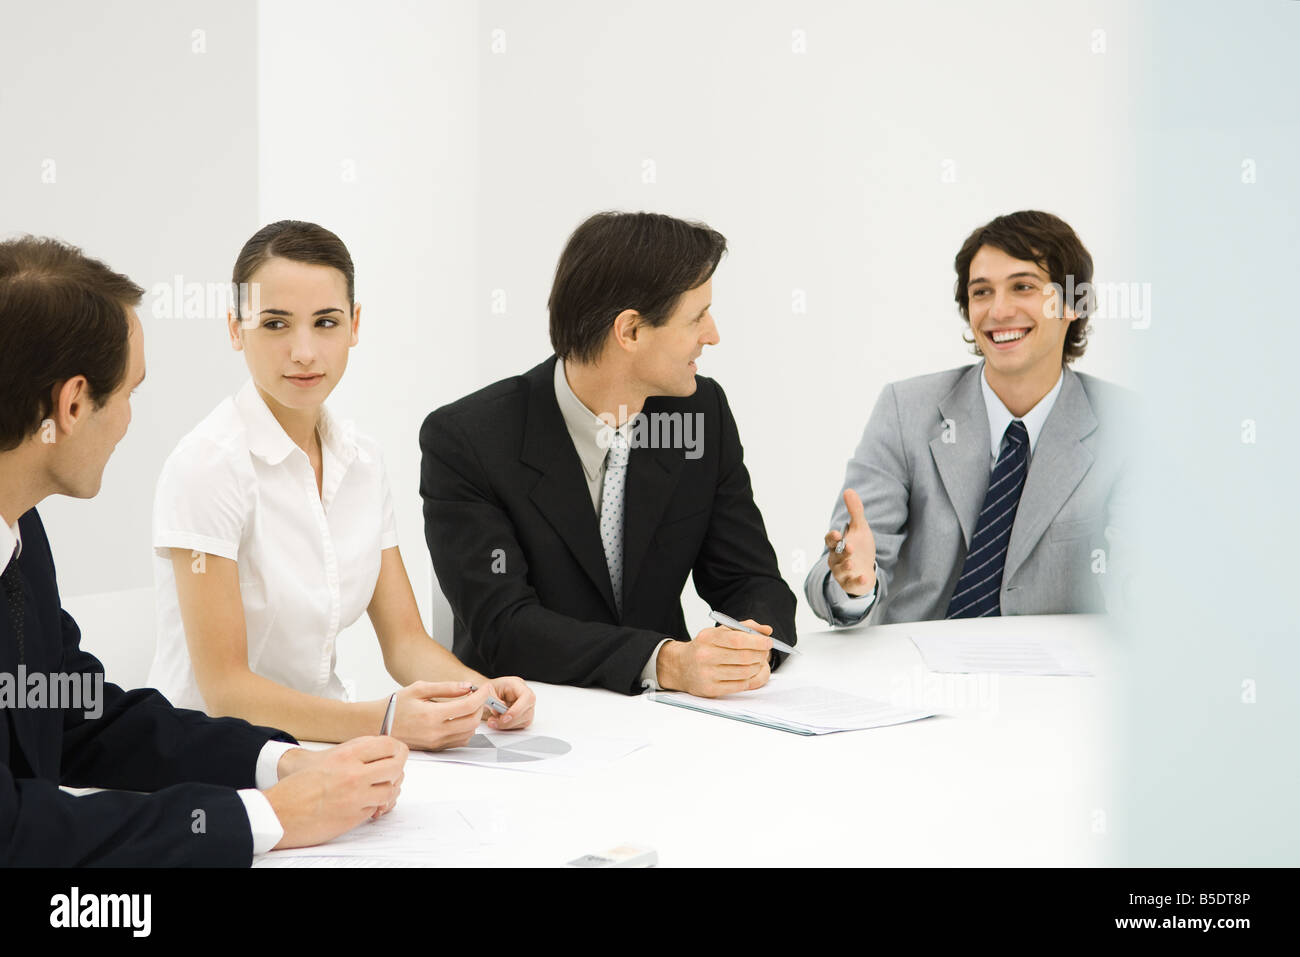 Business associates sitting around conference table, looking at each other, smiling - Stock Image